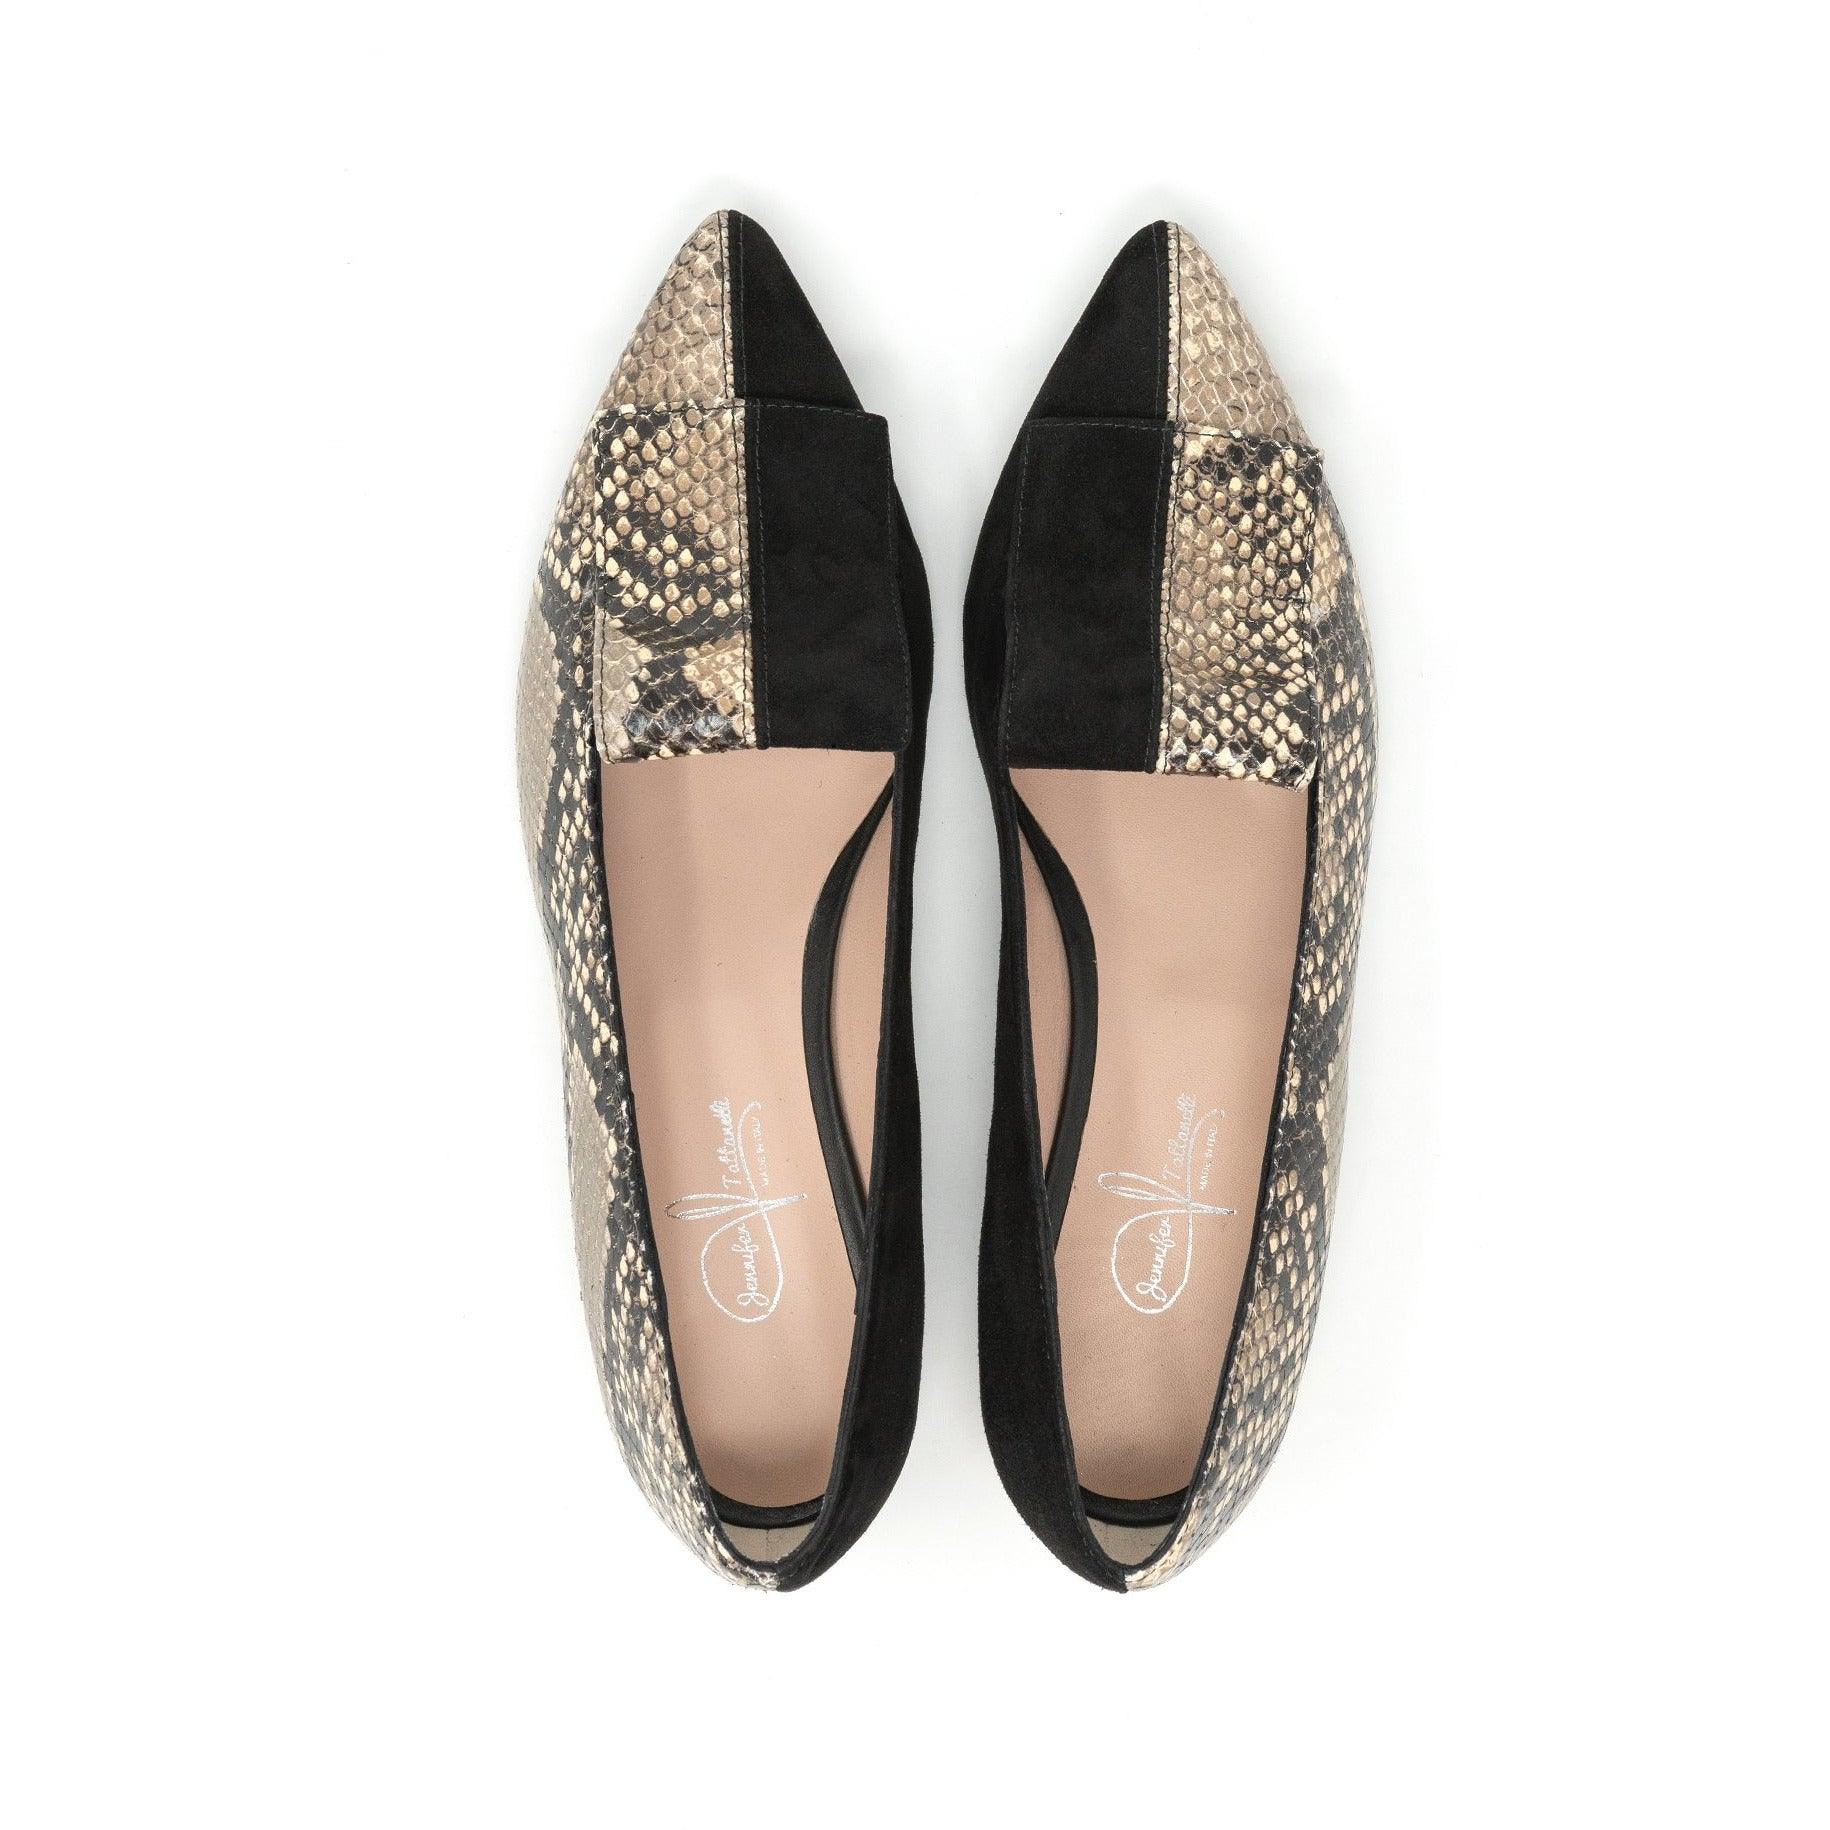 MIL8201 T10 Women Flats - Jennifer Tattanelli Signature Collection